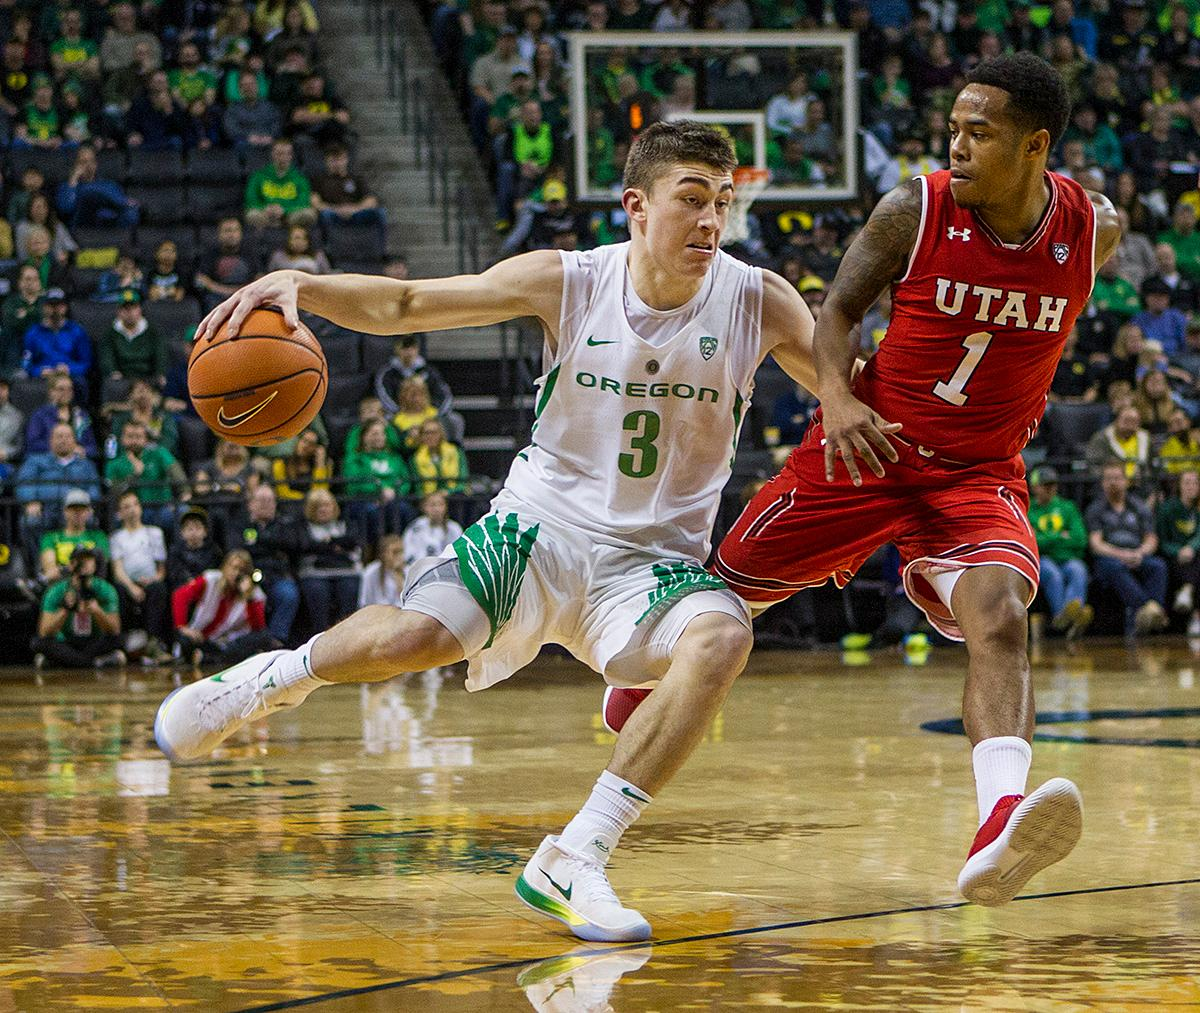 Oregon Ducks Payton Pritchard (#3) dribbles the ball past Utah's defense. The Utah Utes defeated the Oregon Ducks 66-56 on Friday night at Matthew Knight Arena. This is the first Pac-12 conference game loss at home for the Ducks since January of 2015. This also ended the five home game winning streak for the Ducks against the Utah Utes. Photo by Rhianna Gelhart, Oregon News Lab